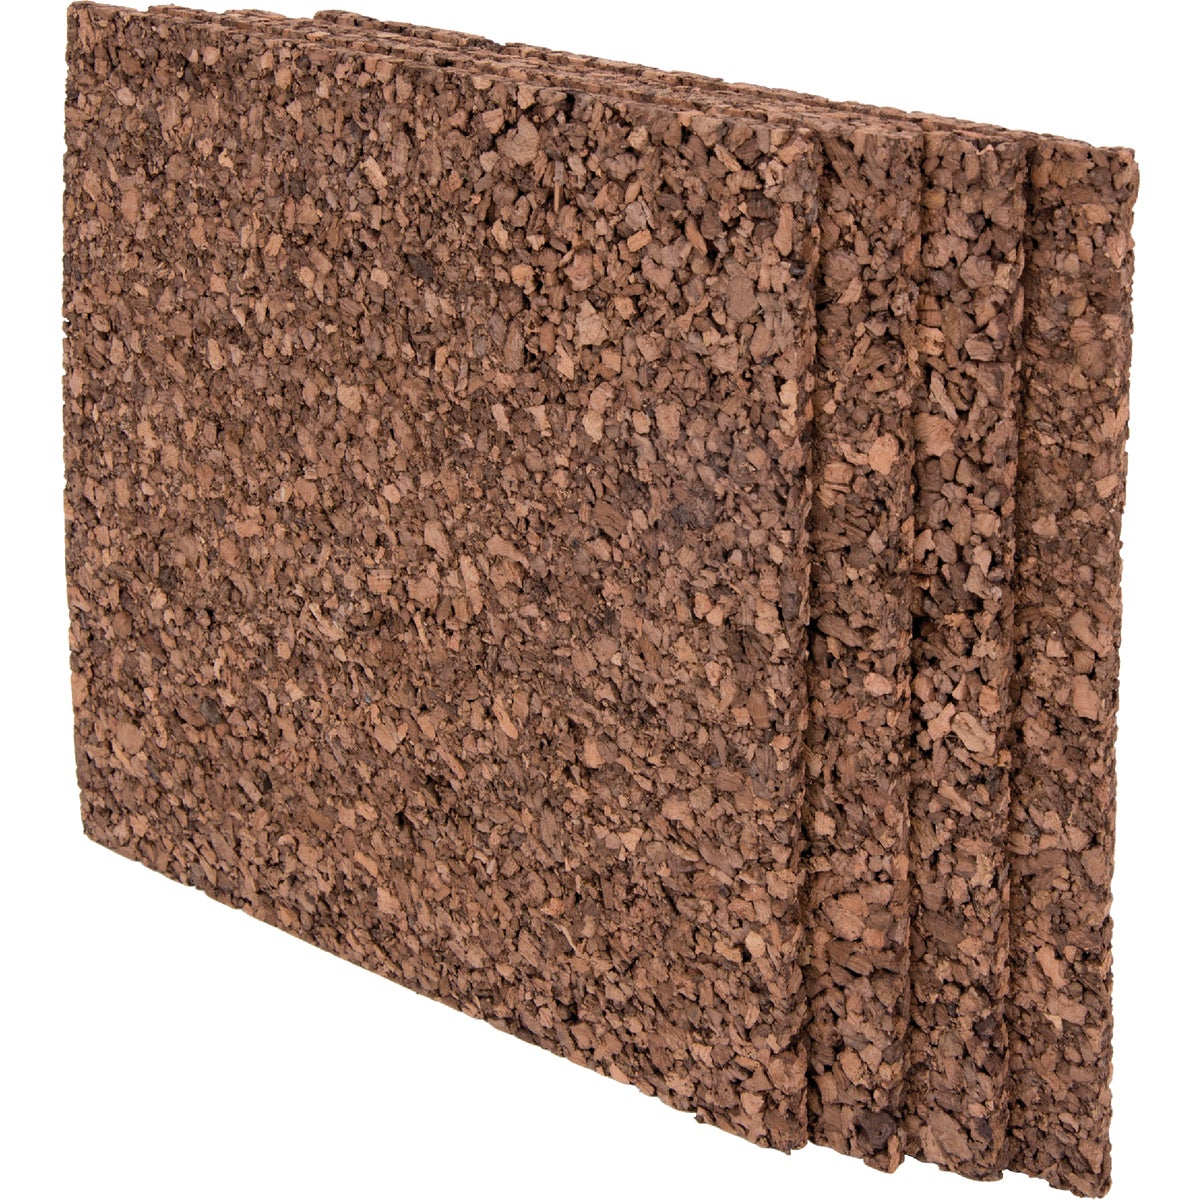 12X12 DARK TILE CORK